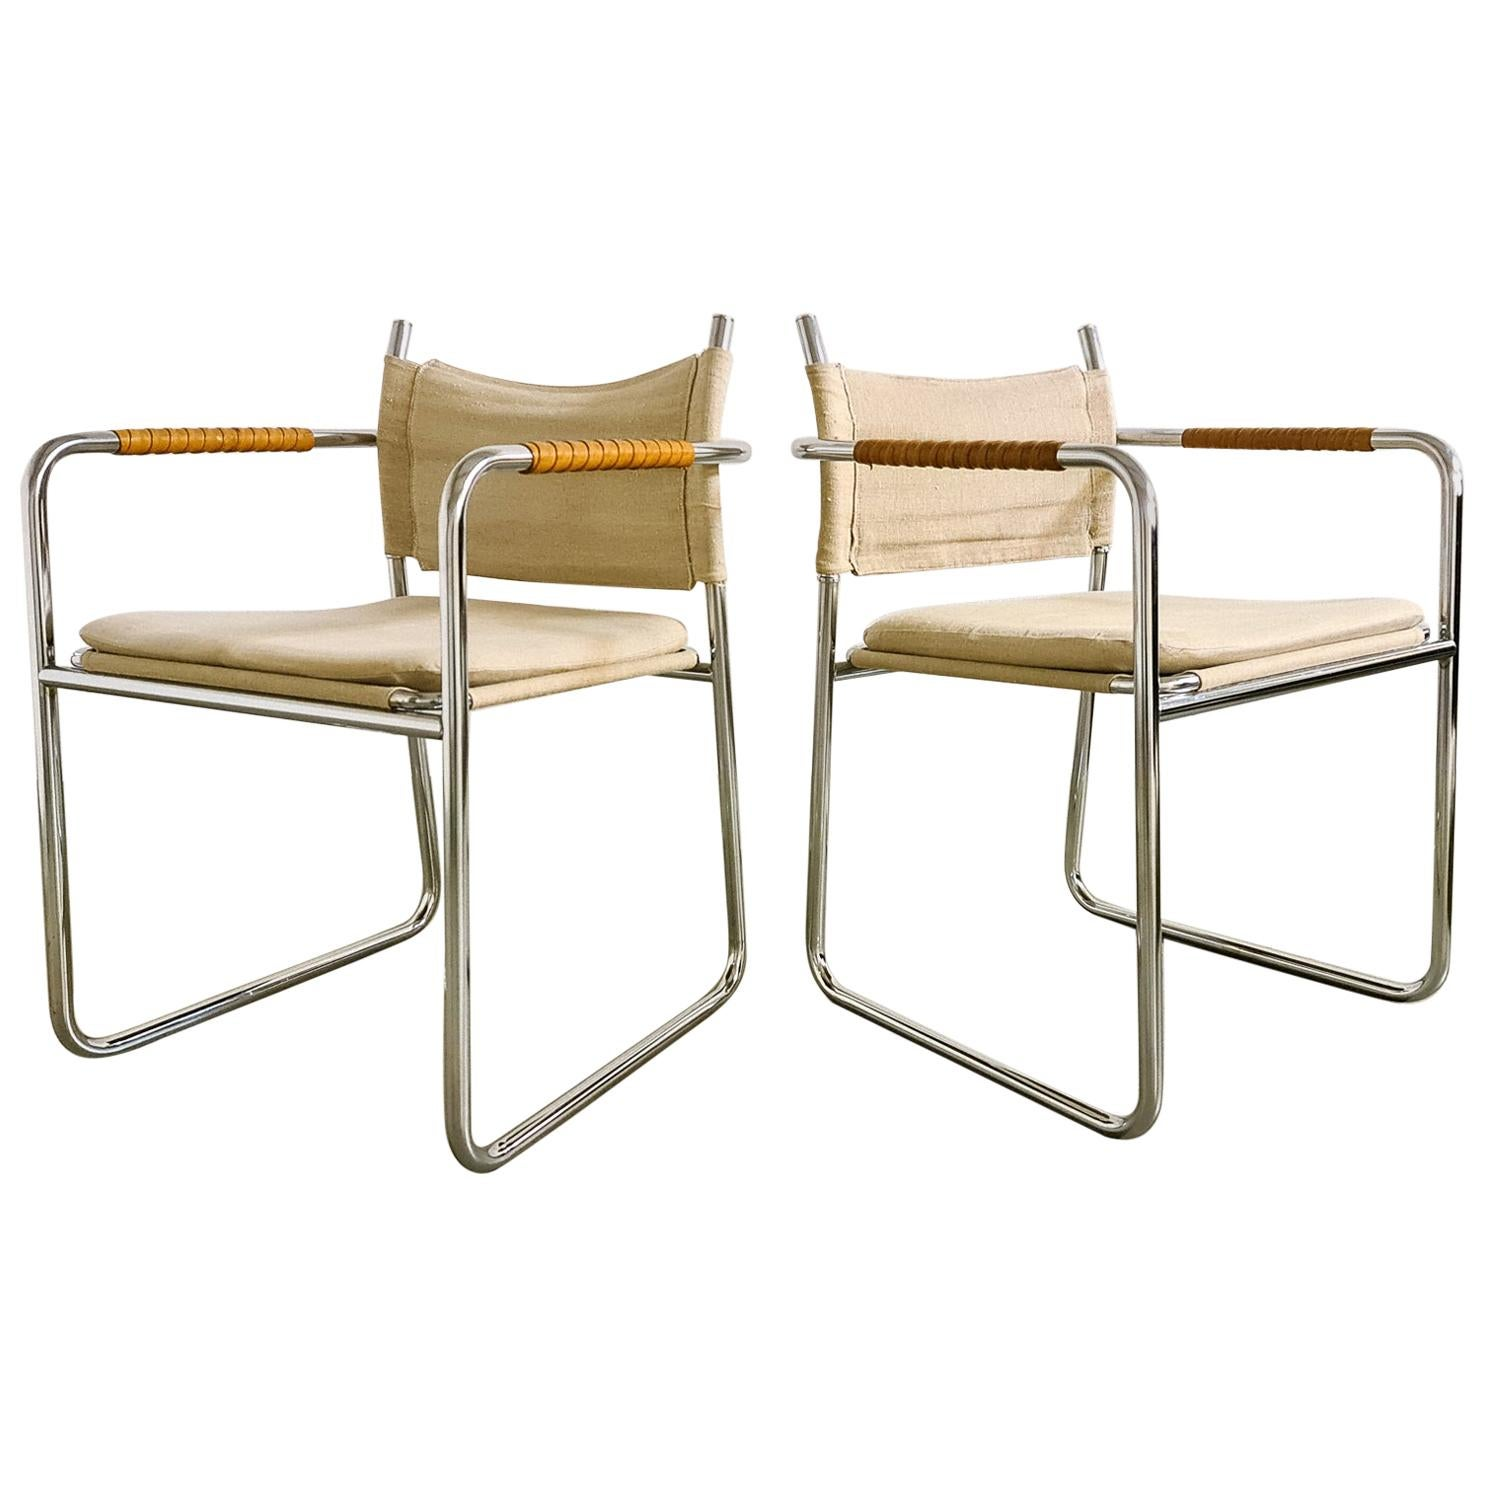 Karin Mobring Armchairs Model Amiral by Ikea in Sweden, 1970s